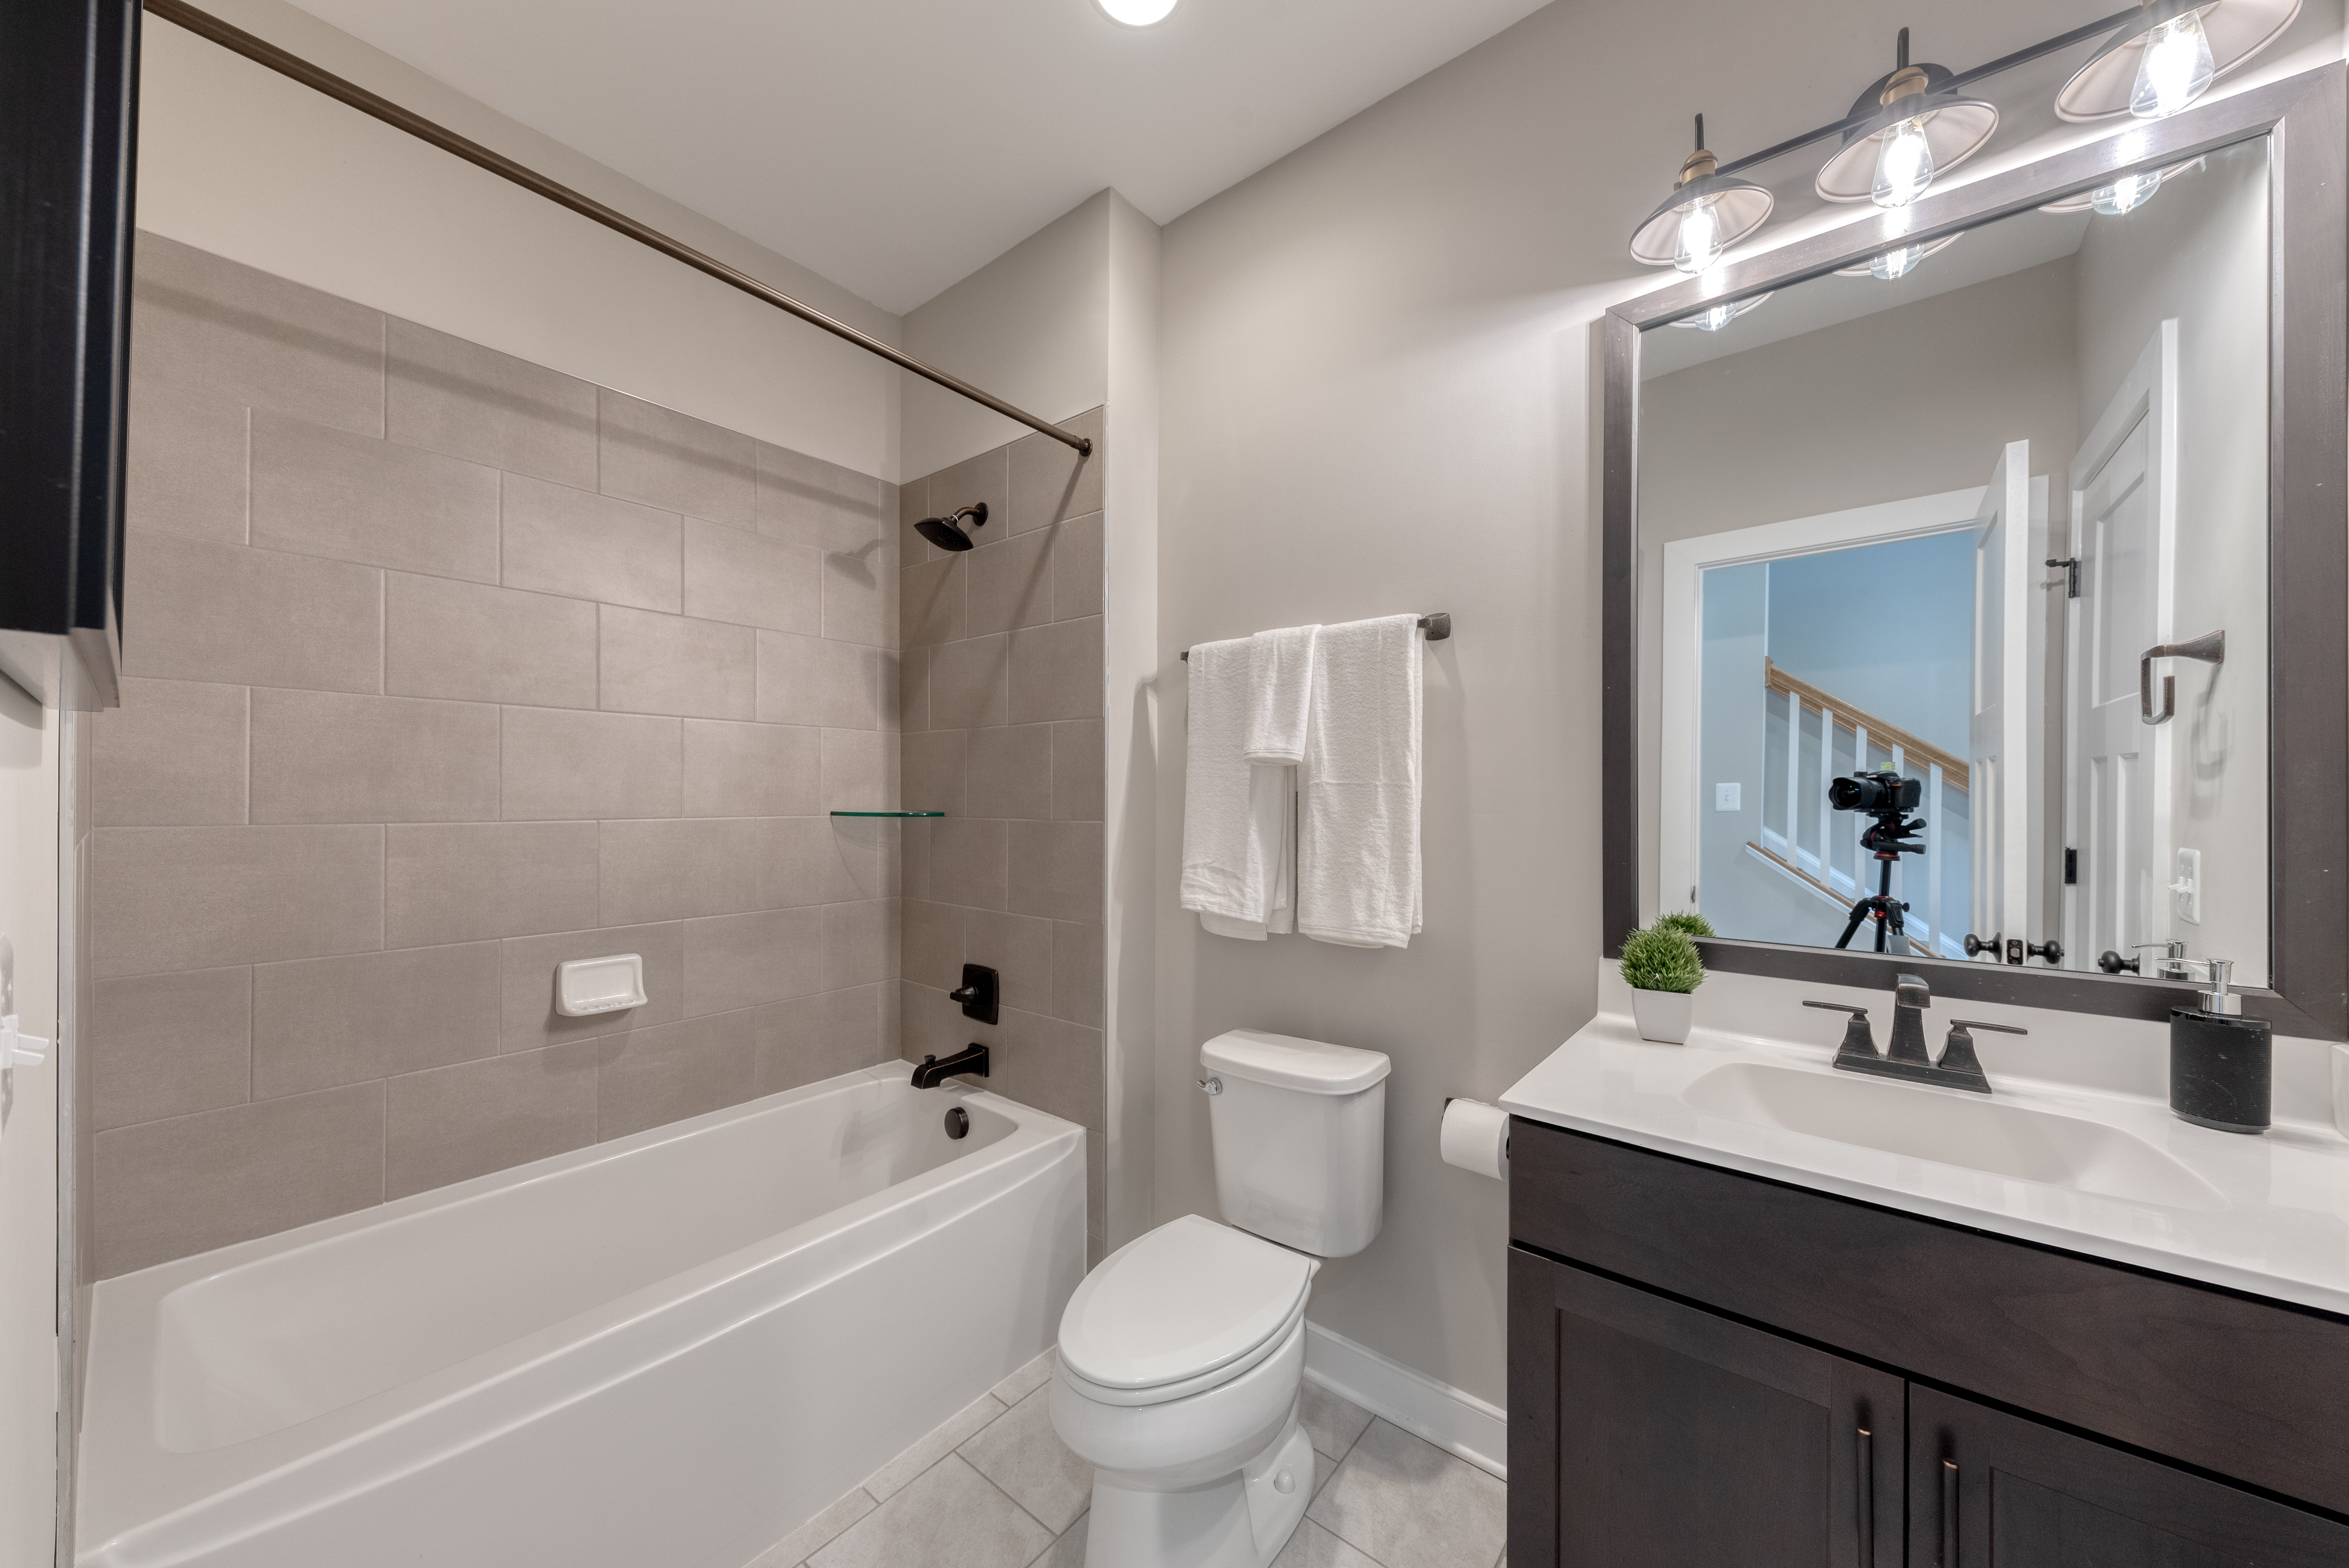 Ground Level Bathroom with Tub, Dark Cabinets and Gray Tile